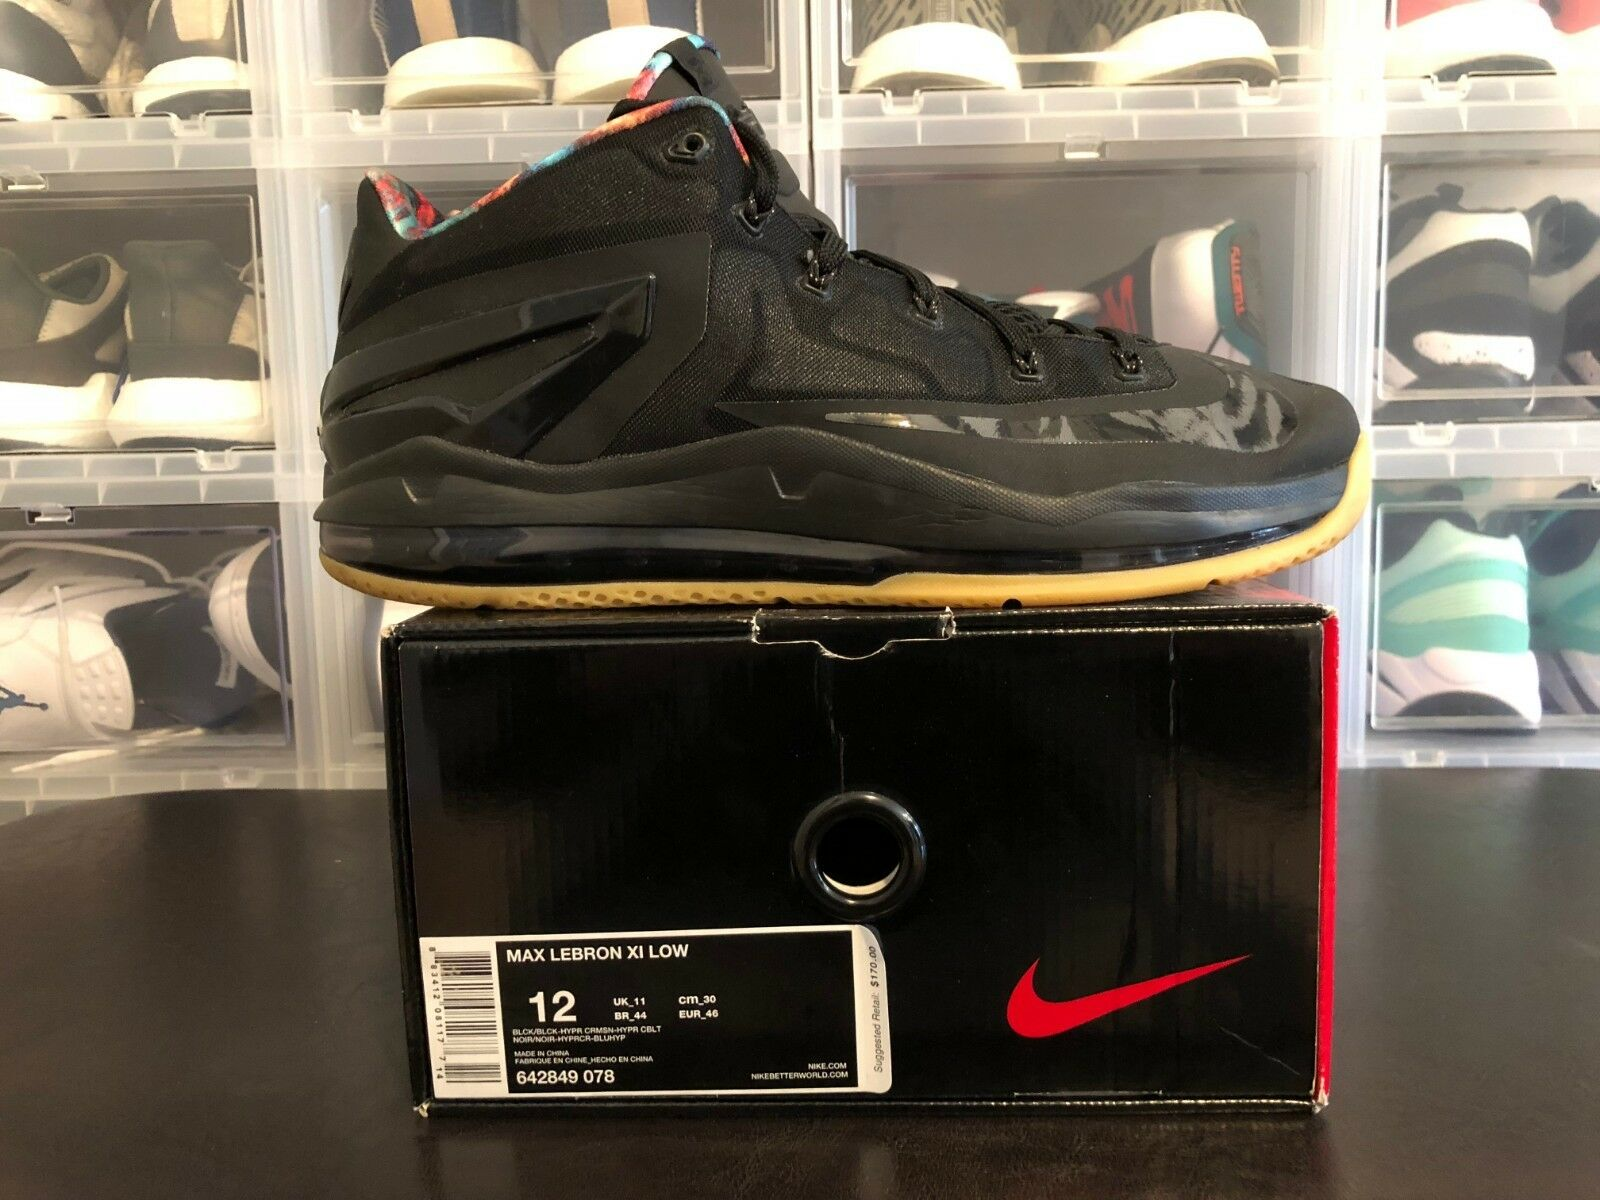 Nike LeBron 11 Low Nero Gum 642849-078 SIZE 12 VNDS